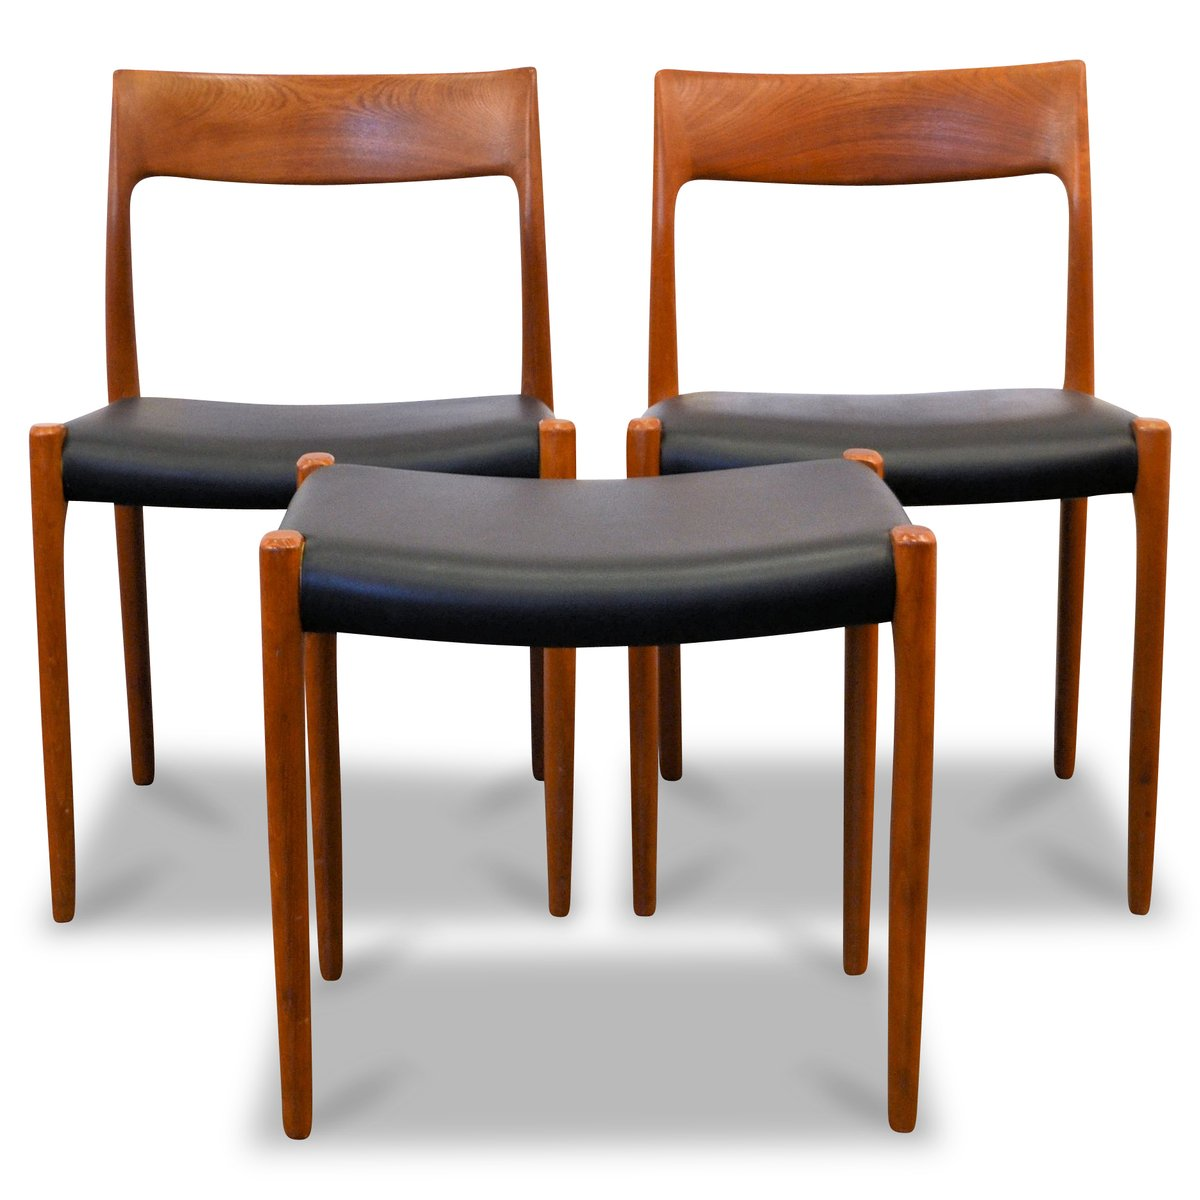 chair and matching stool wingback rocking danish teak dining chairs by niels o